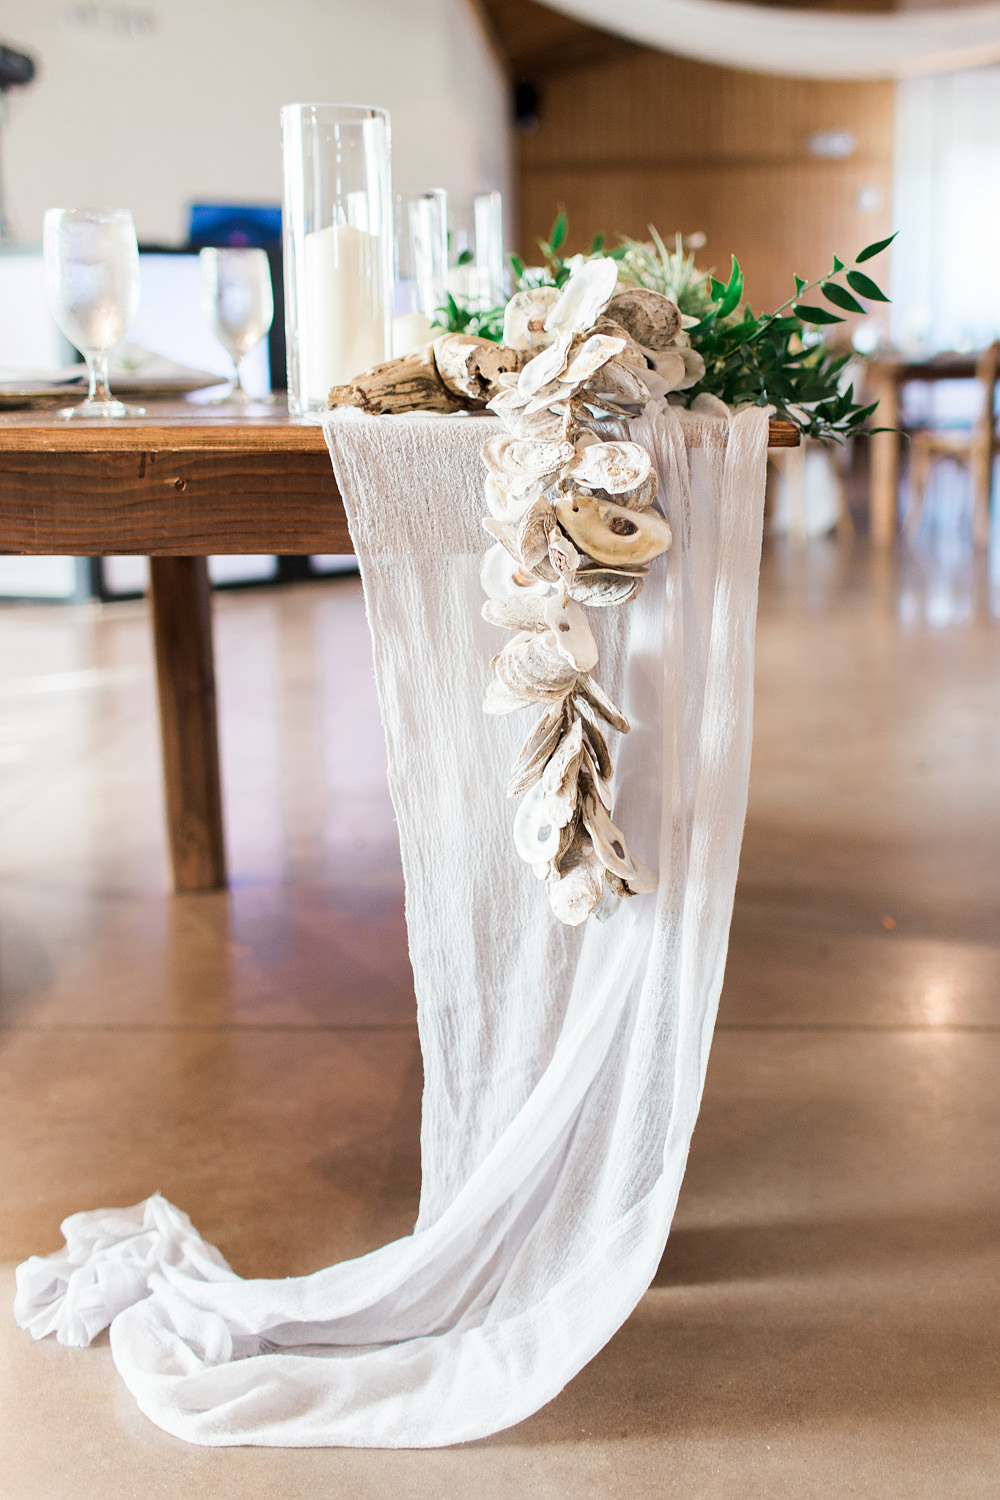 White cheesecloth runner using strands of shells as decor.